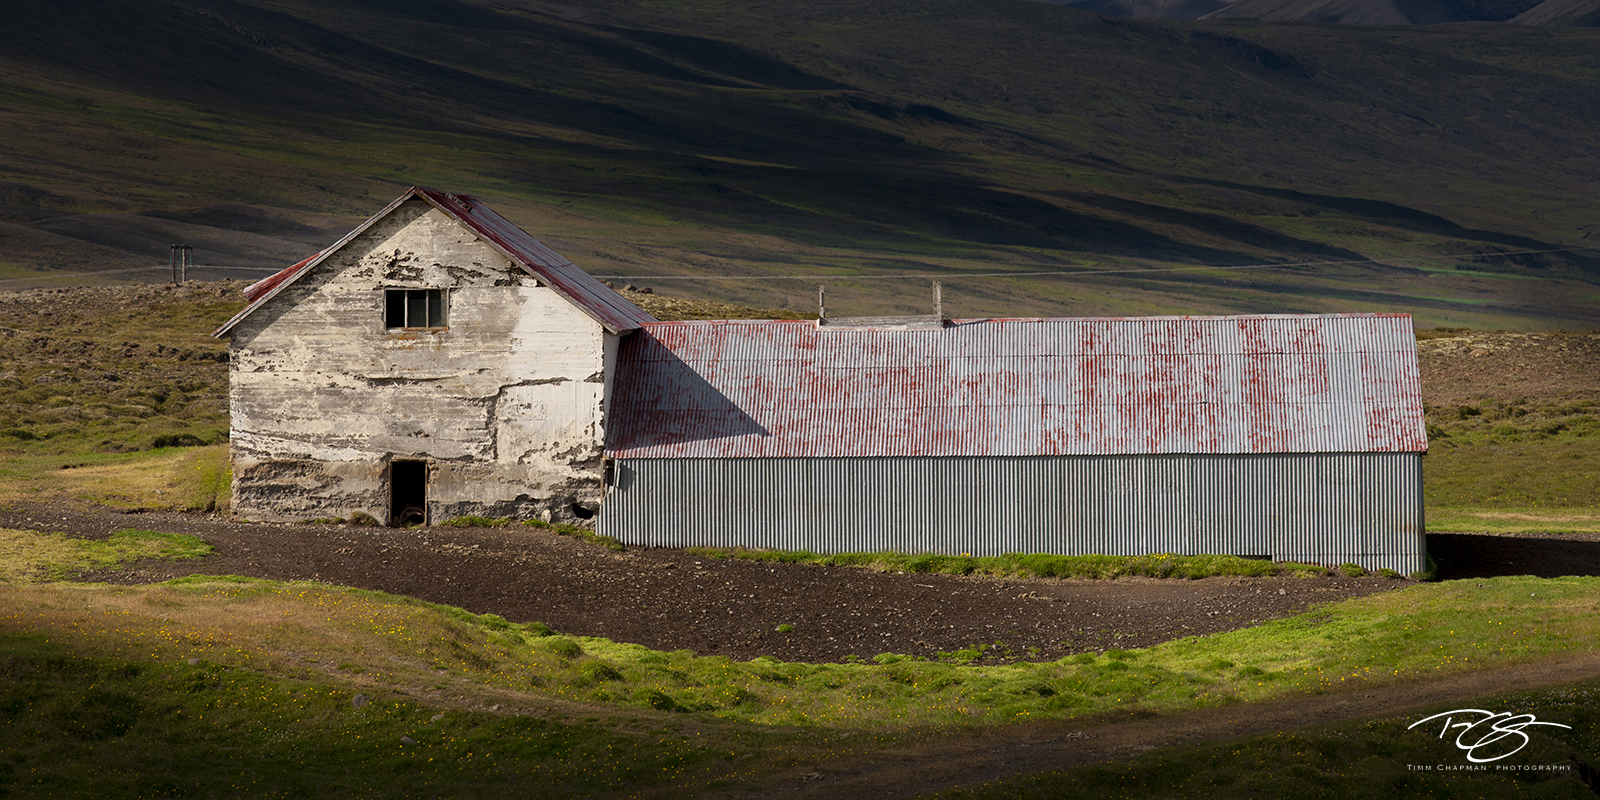 iceland, selective lighting, farm, barn, farmhouse, rural, rural scene, weathered, patina, peeling paint, abandoned, worn, light, shadow, In the Spotlight, photo